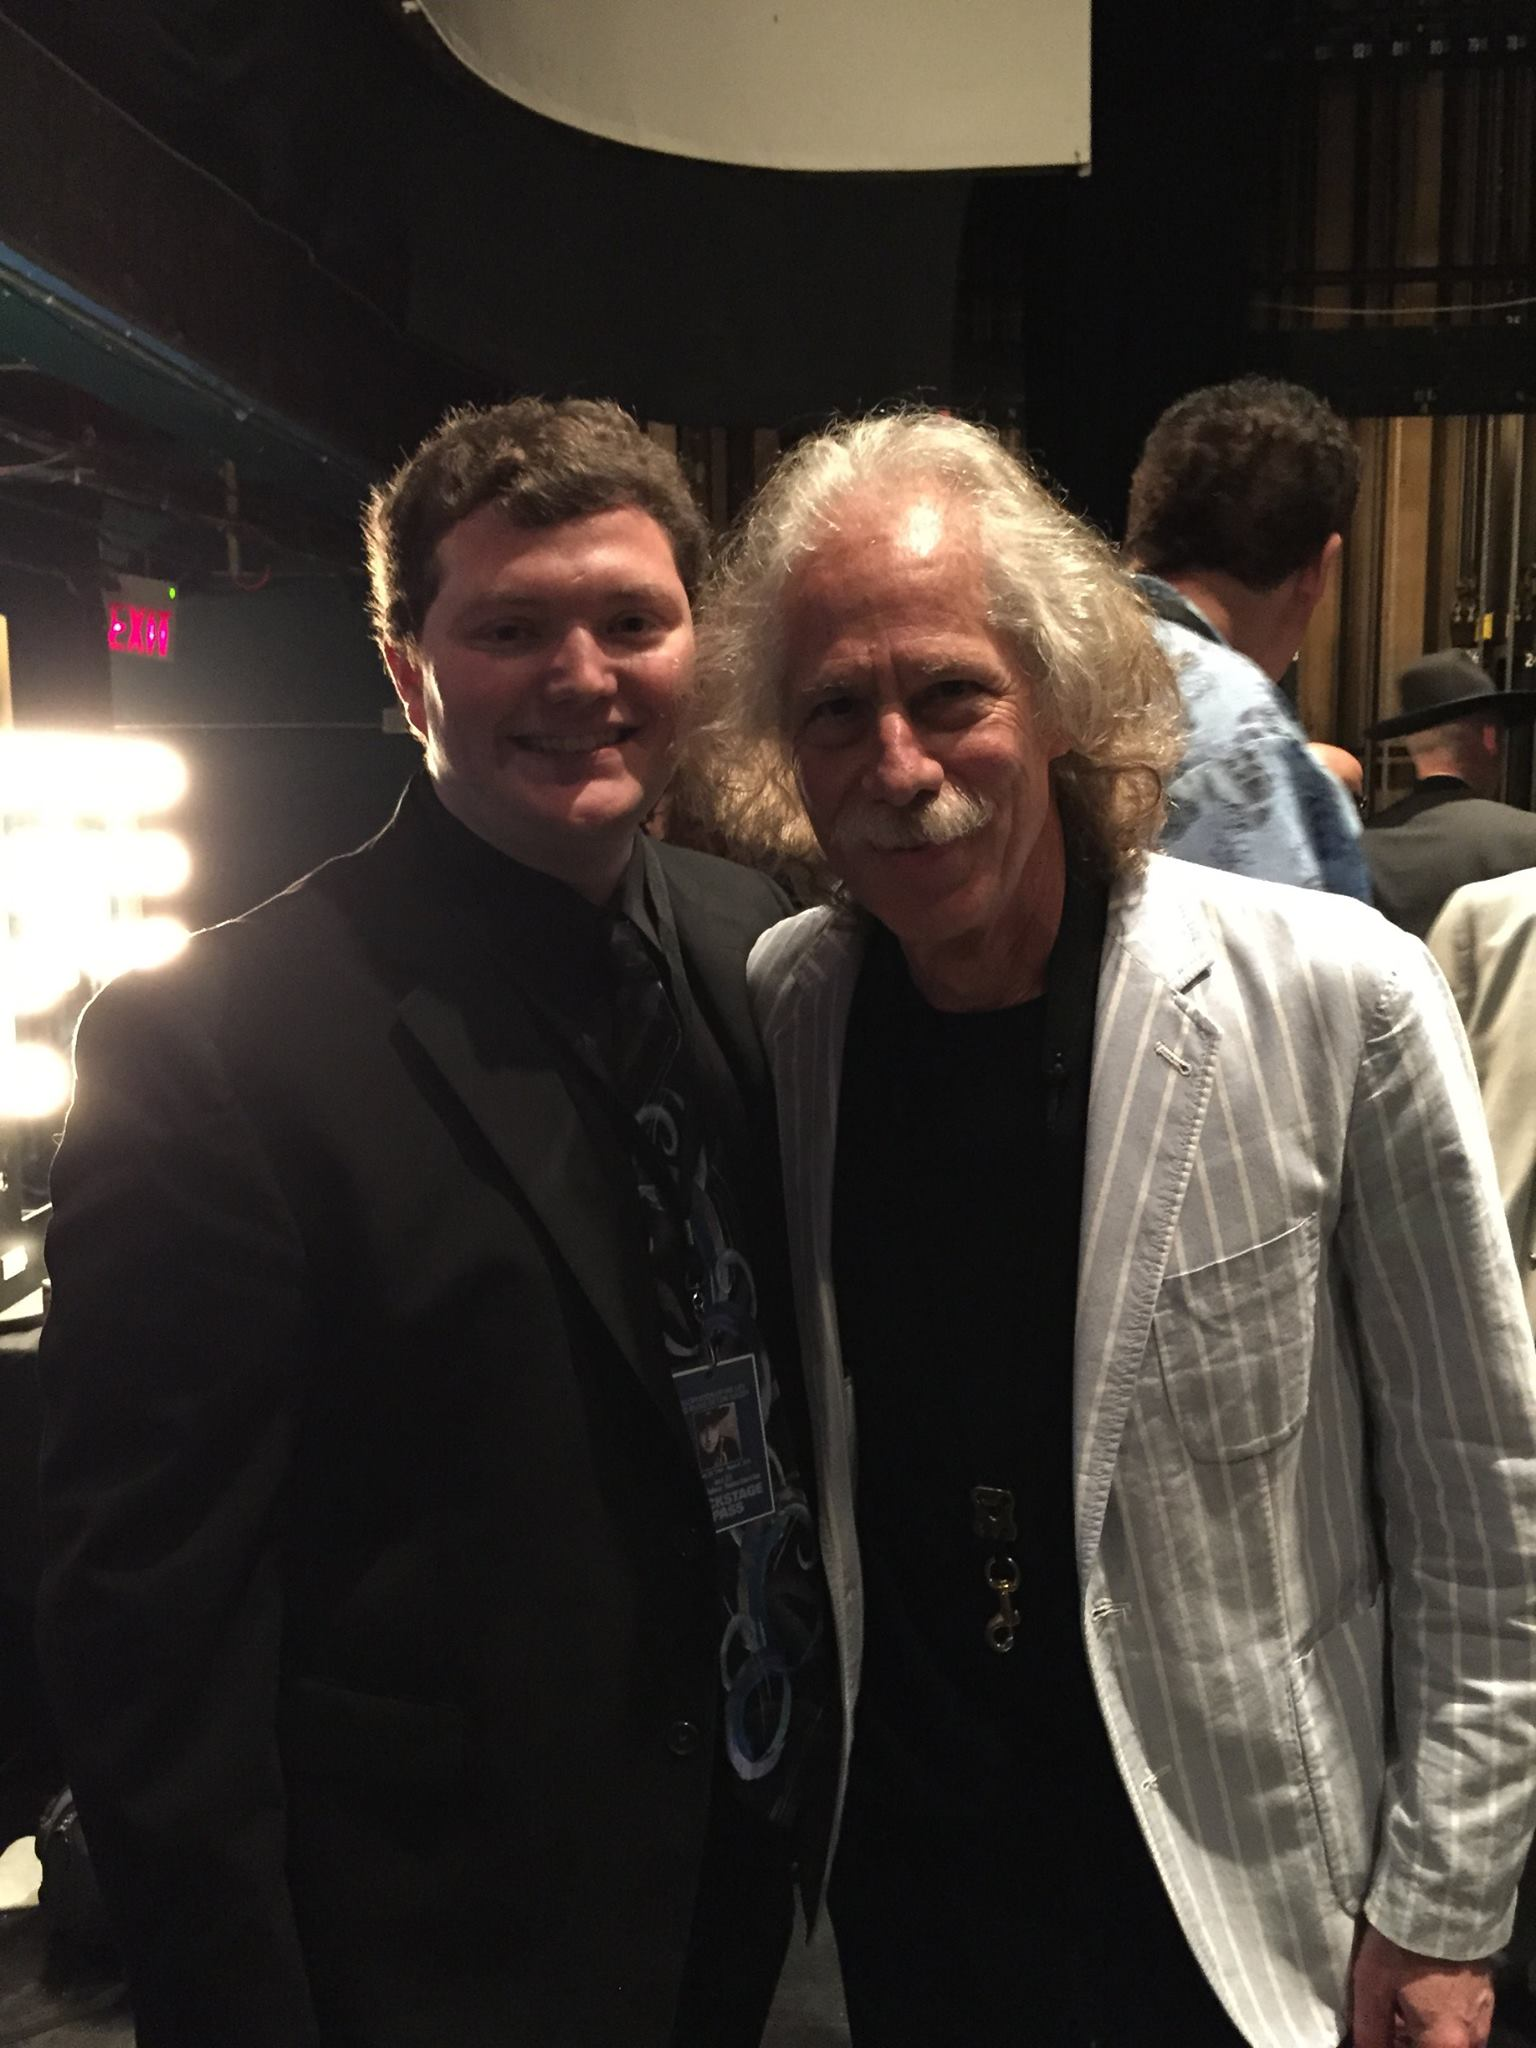 Brandon with Blue Lou Marini (Original member of Blues Brothers band, SNL, Blood Sweat & Tears)